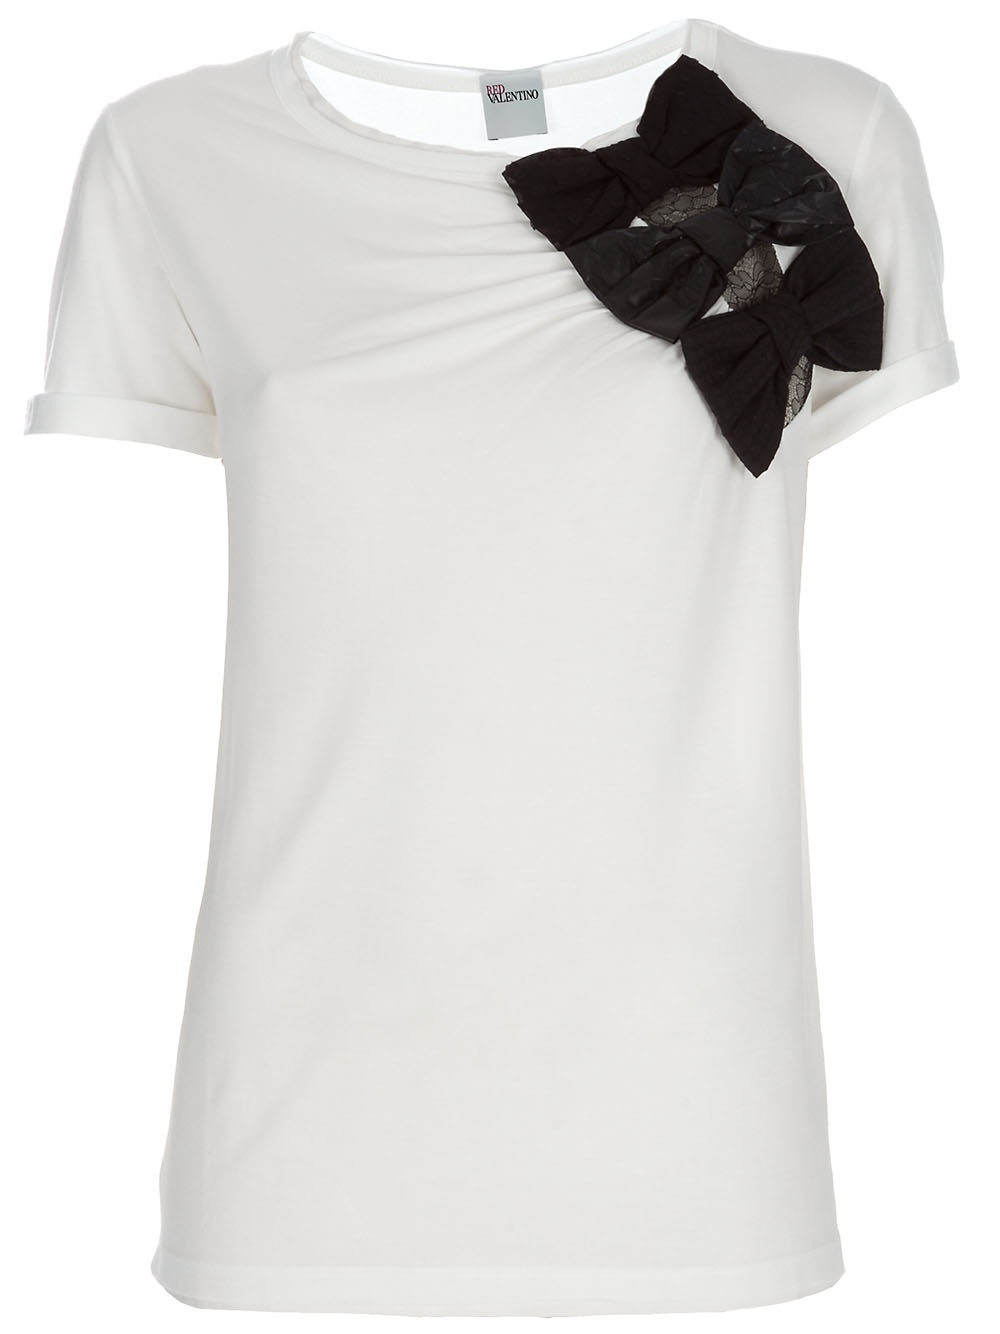 Red valentino bow embellished jersey t shirt in white lyst for Red valentino t shirt